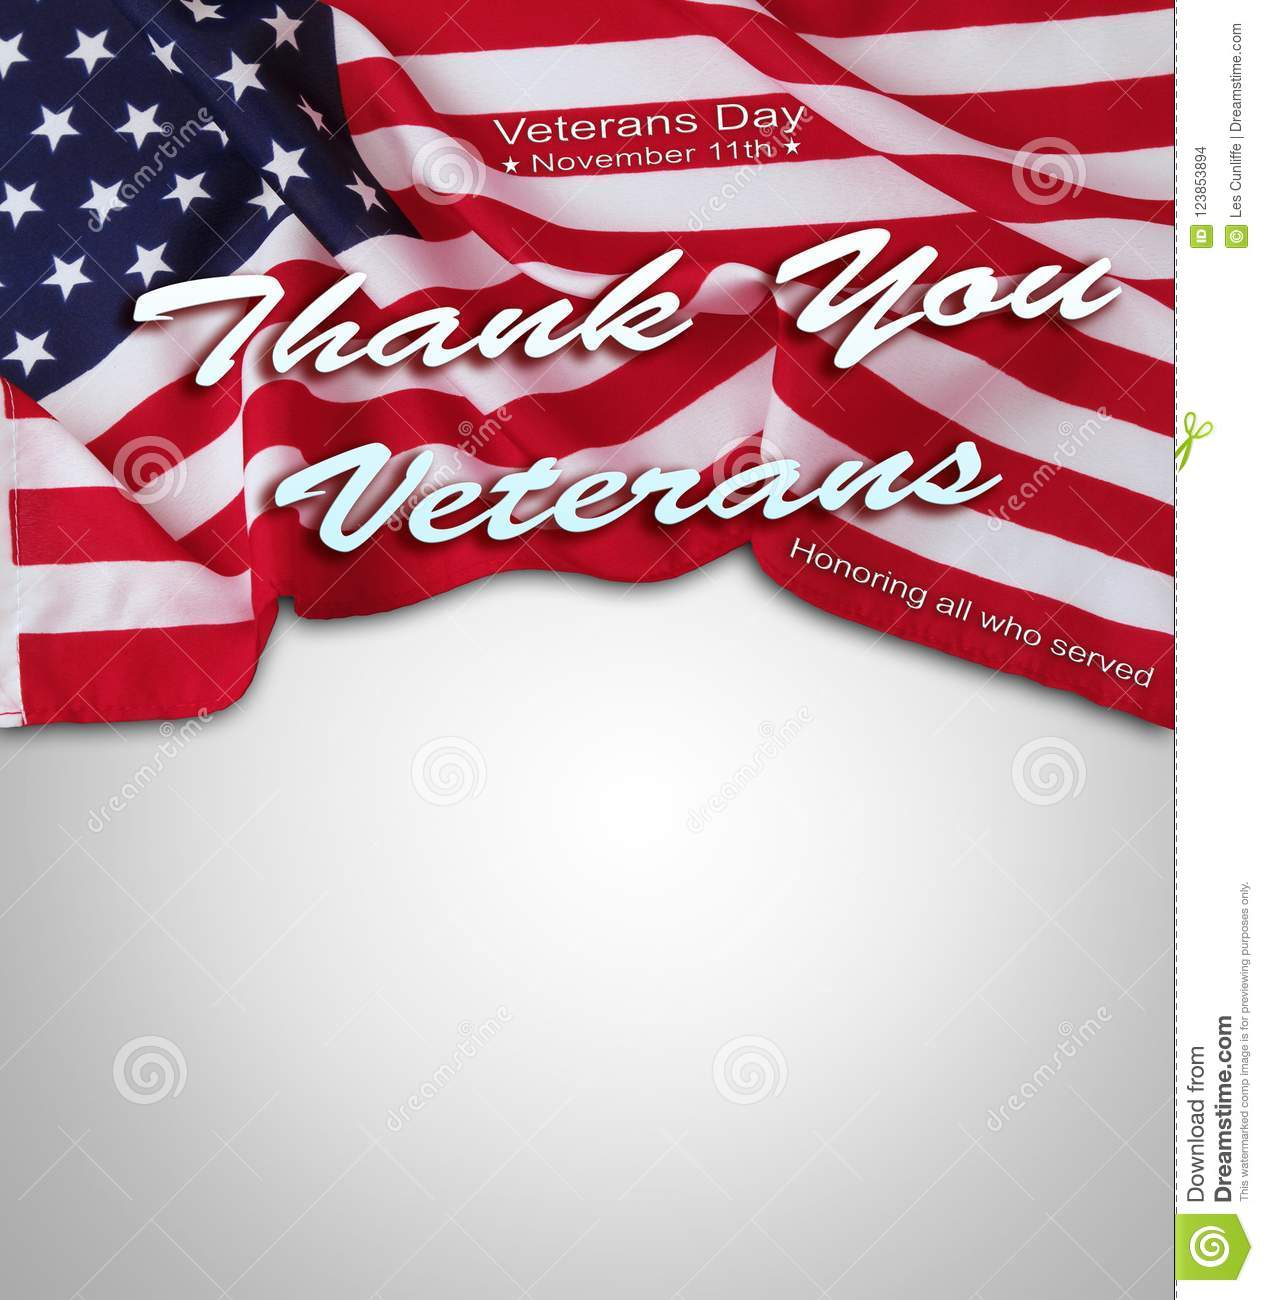 Veterans Day American Flag Stock Photo Image Of Flag 123853894